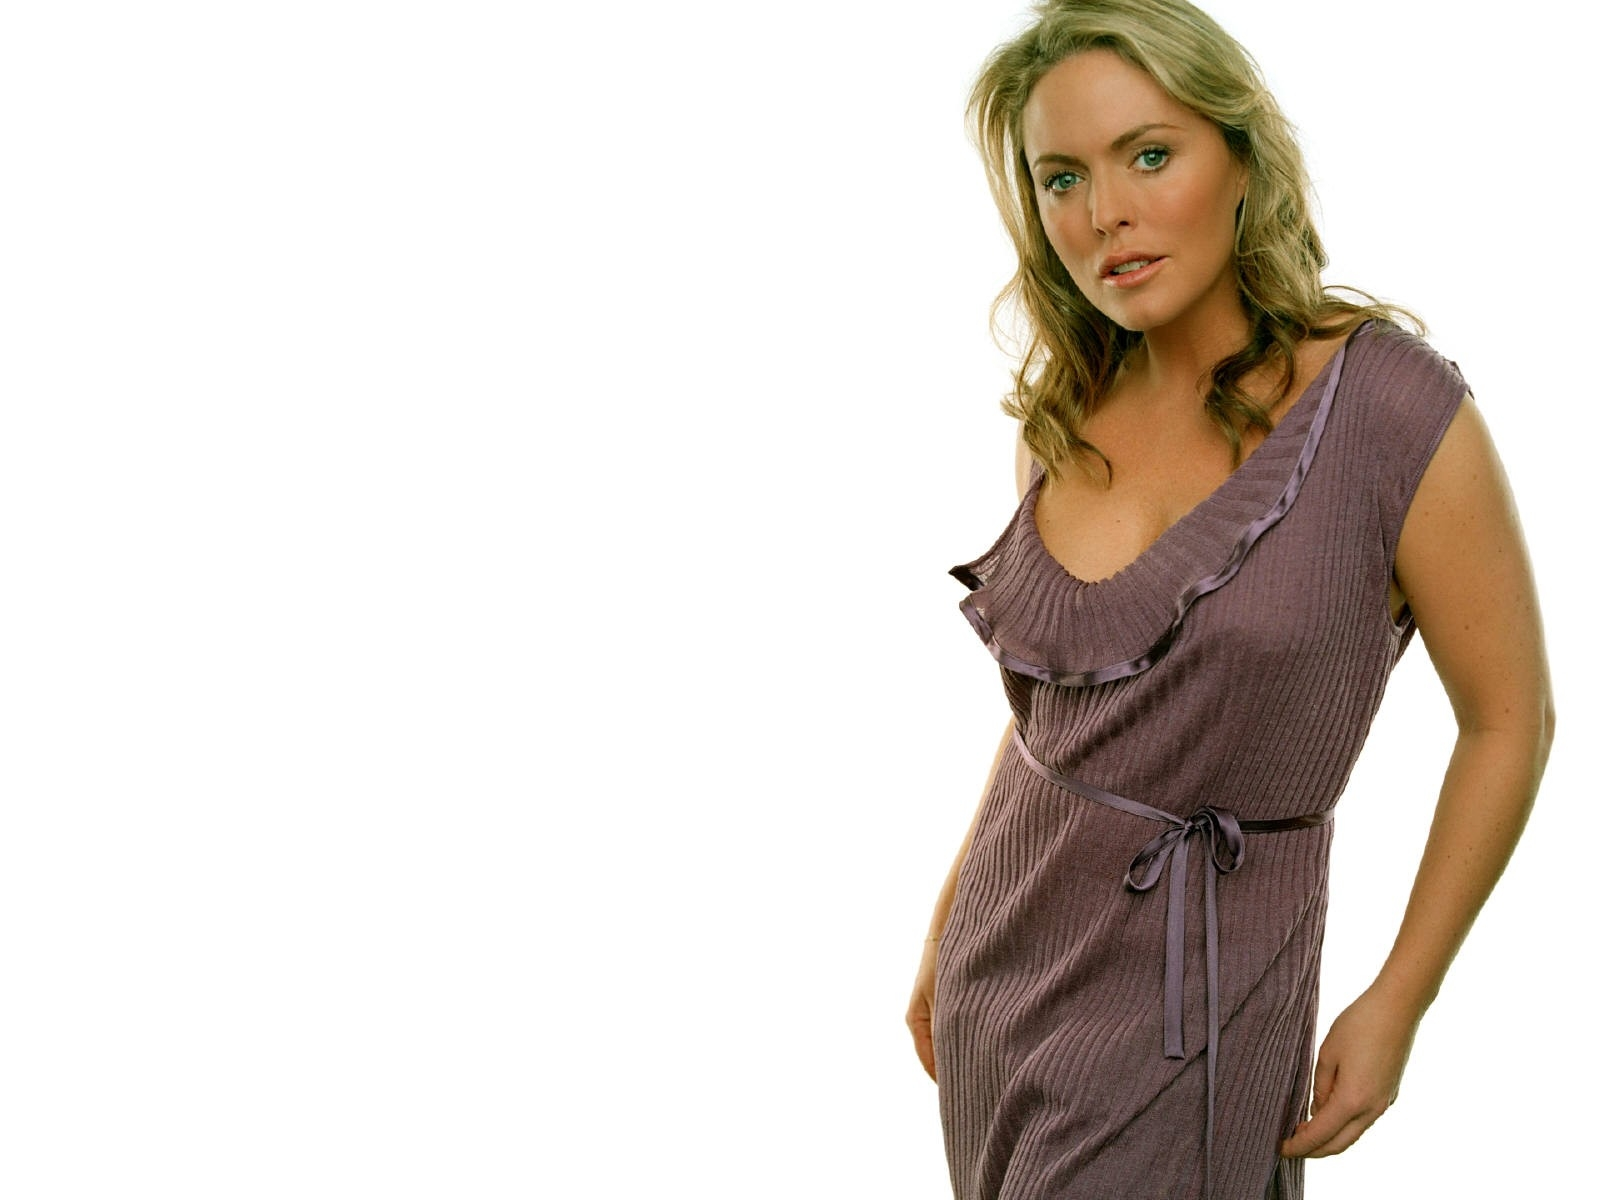 The Patsy Kensit Picture Pages - superiorpics.com